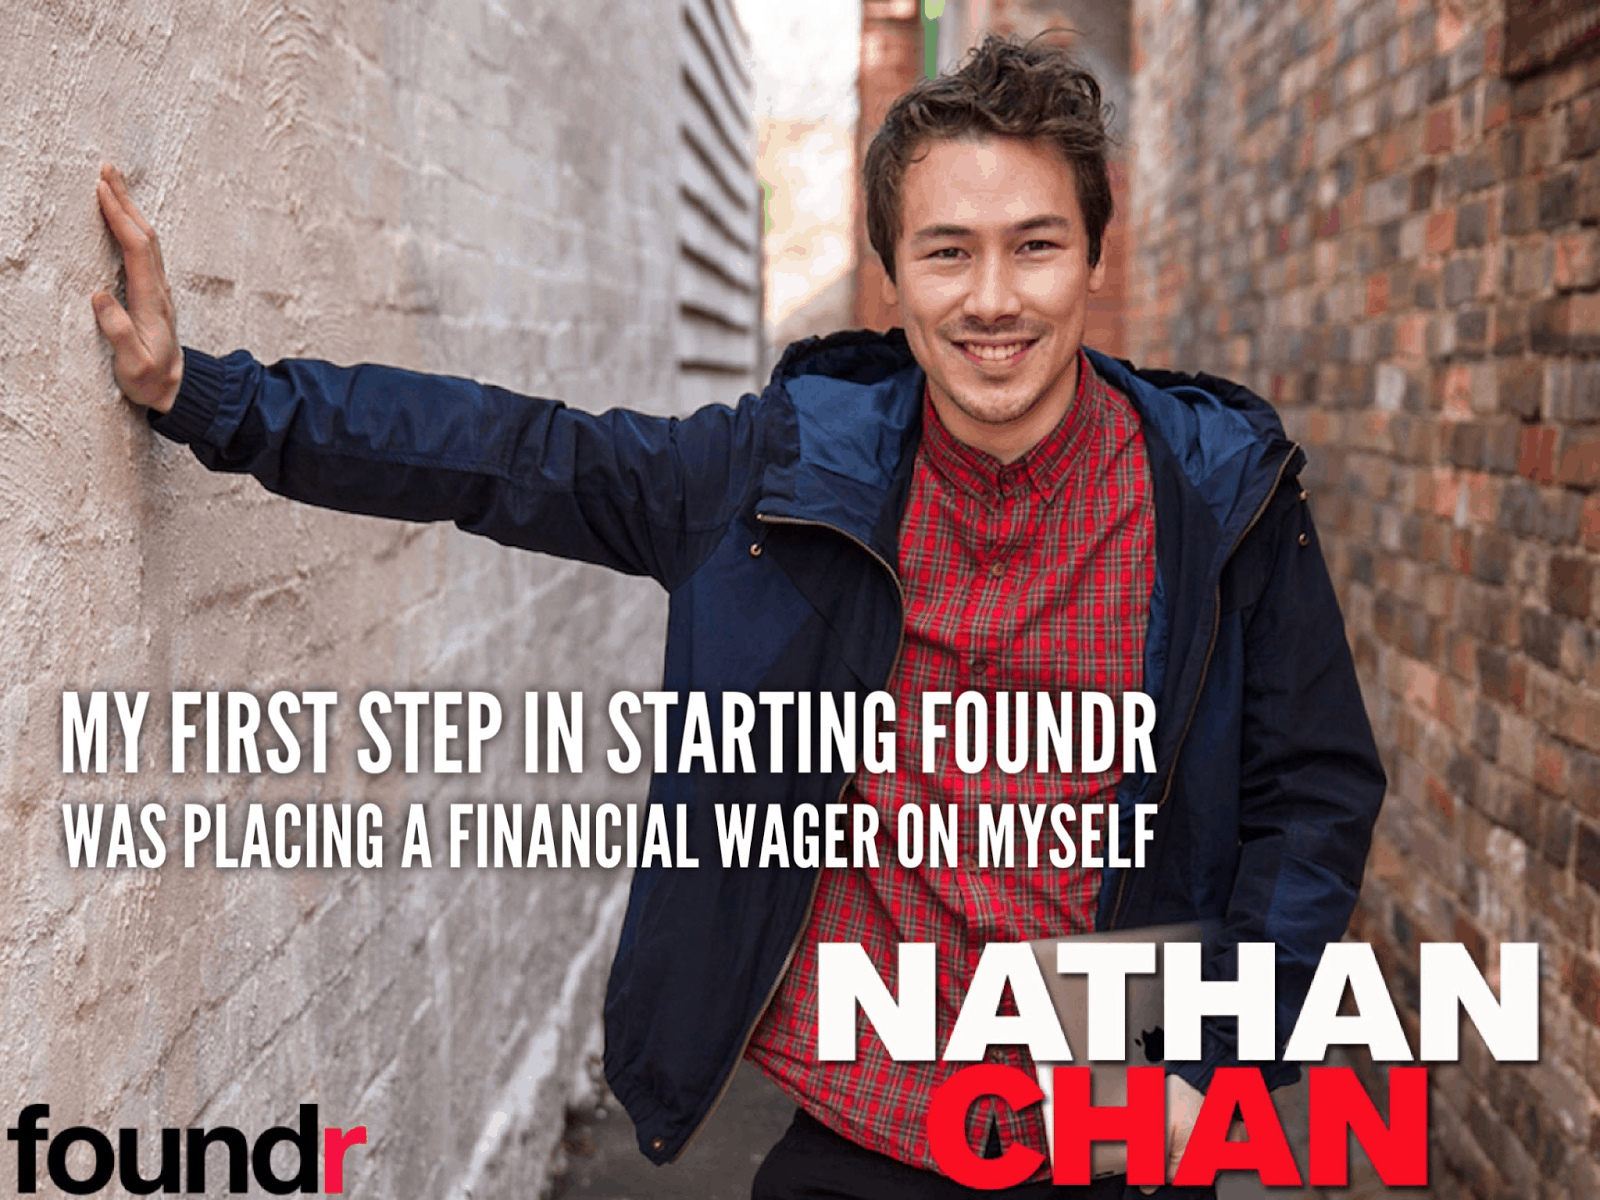 how to start a startup nathan chan